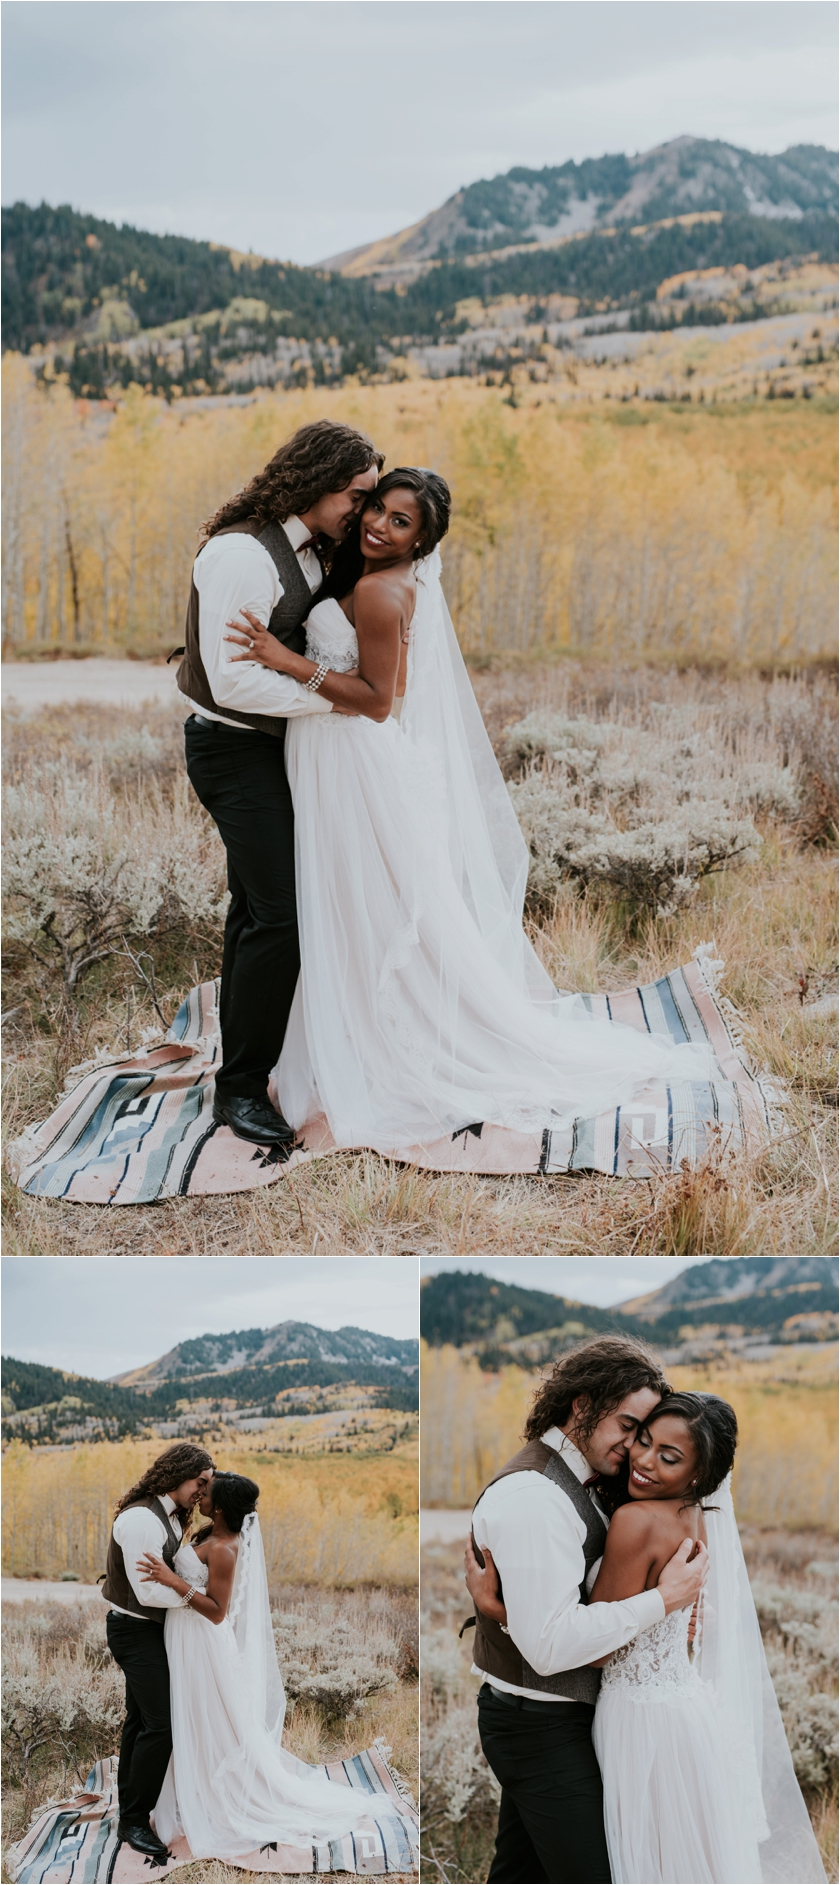 039utah-elopement-photographeramy-cloud-photography